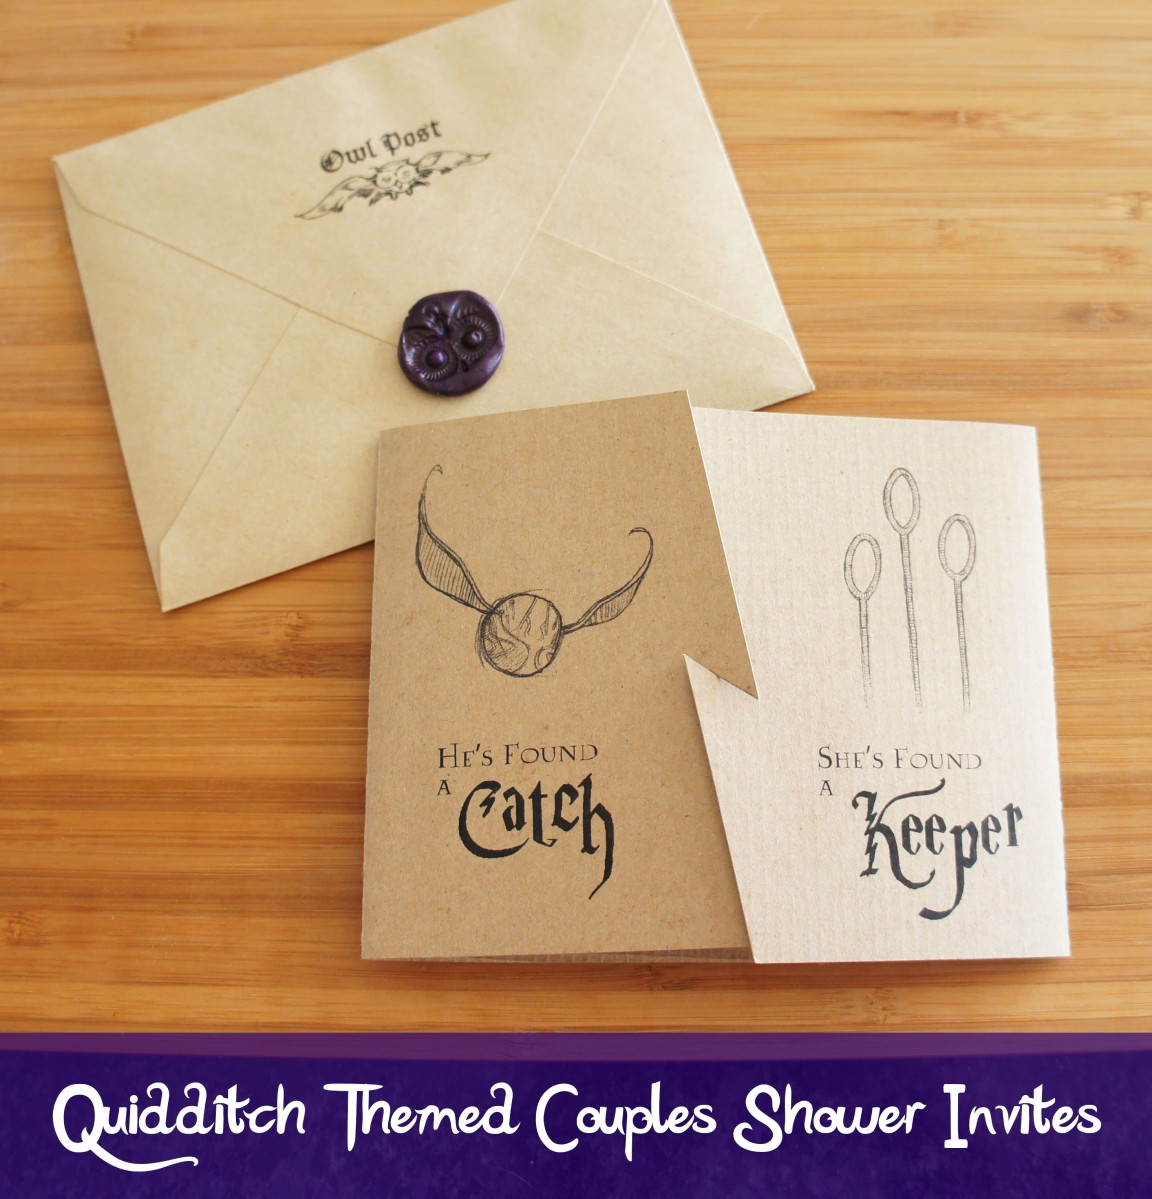 Quidditch Inspired Invites for a Harry Potter Themed Couples Shower